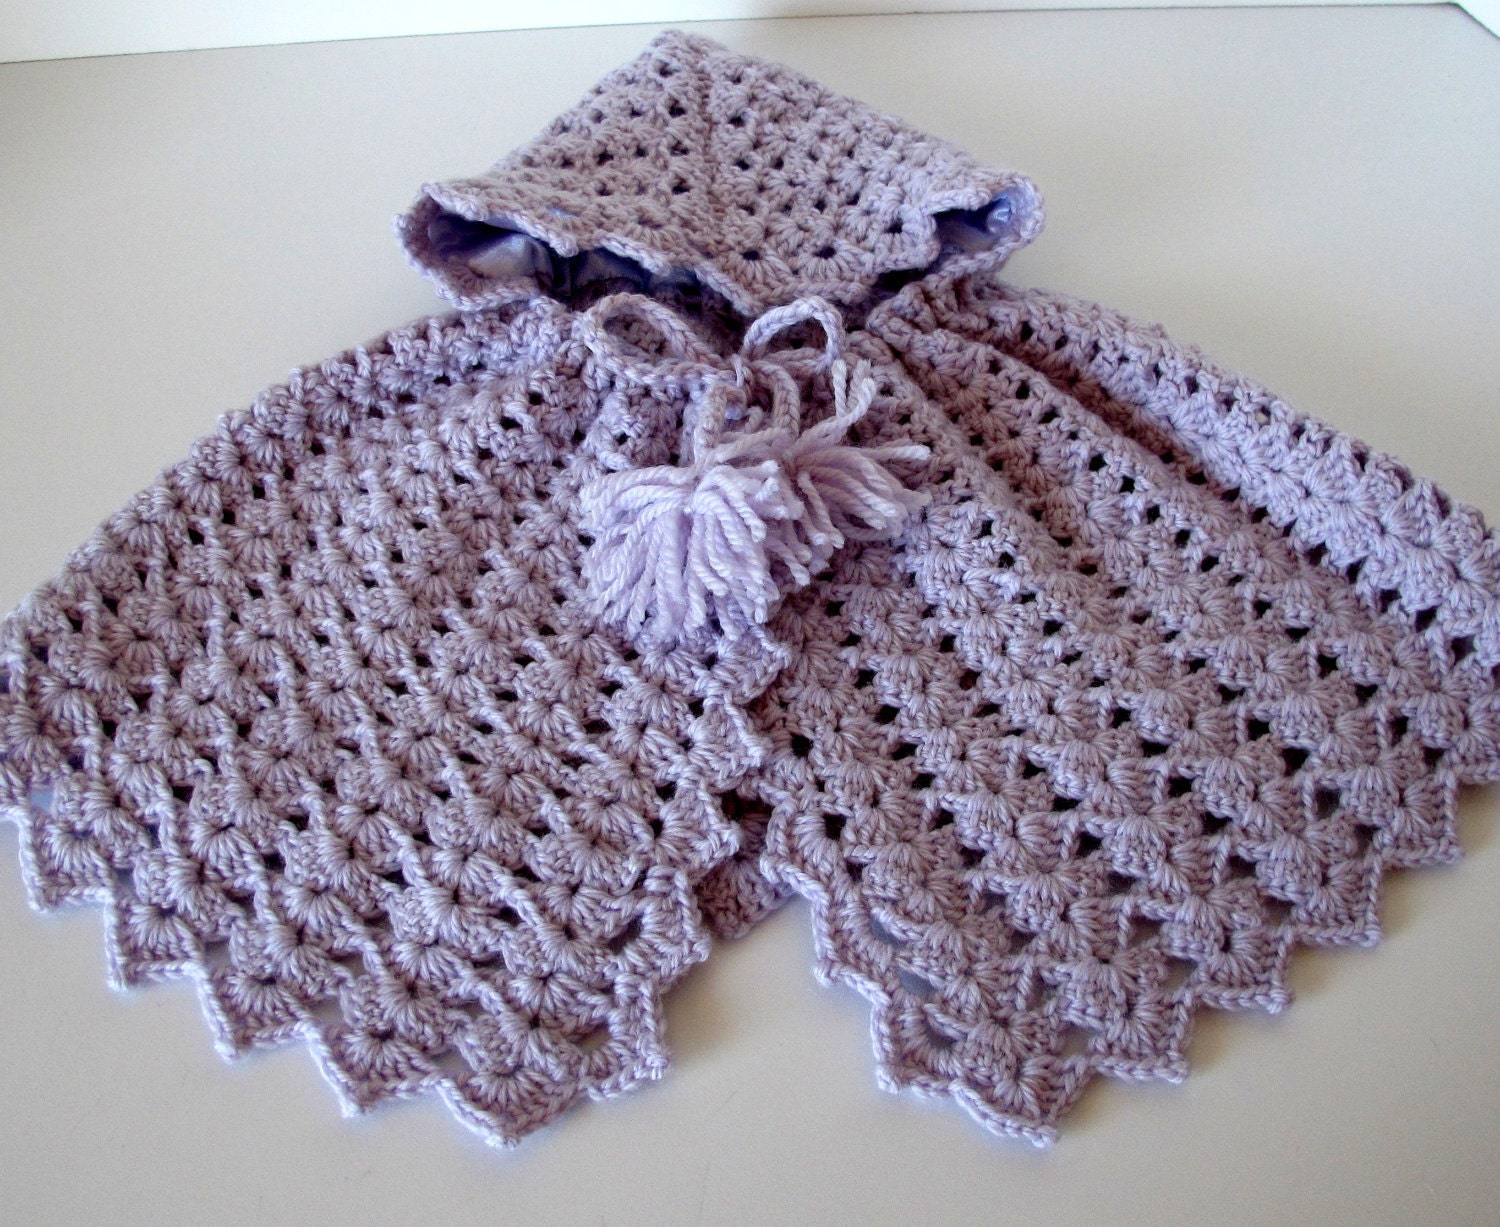 Baby's Crocheted Wool Cape in Pale Lavender - LulusCreations1